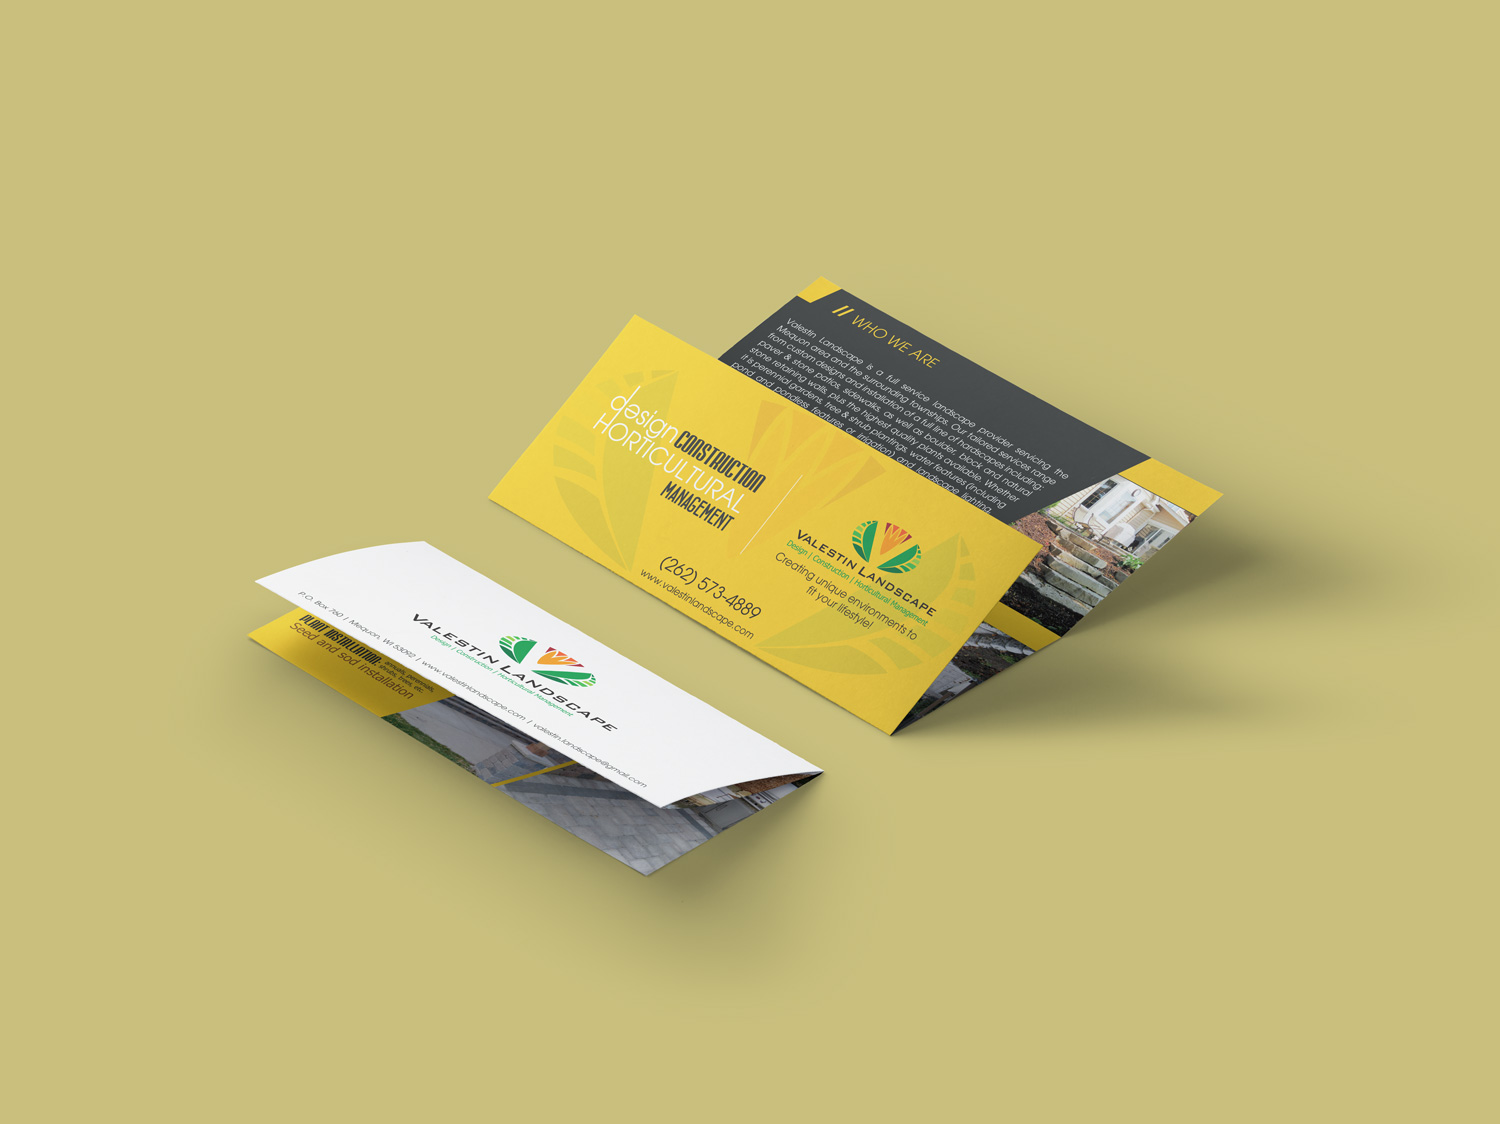 Valestin Brochure Design